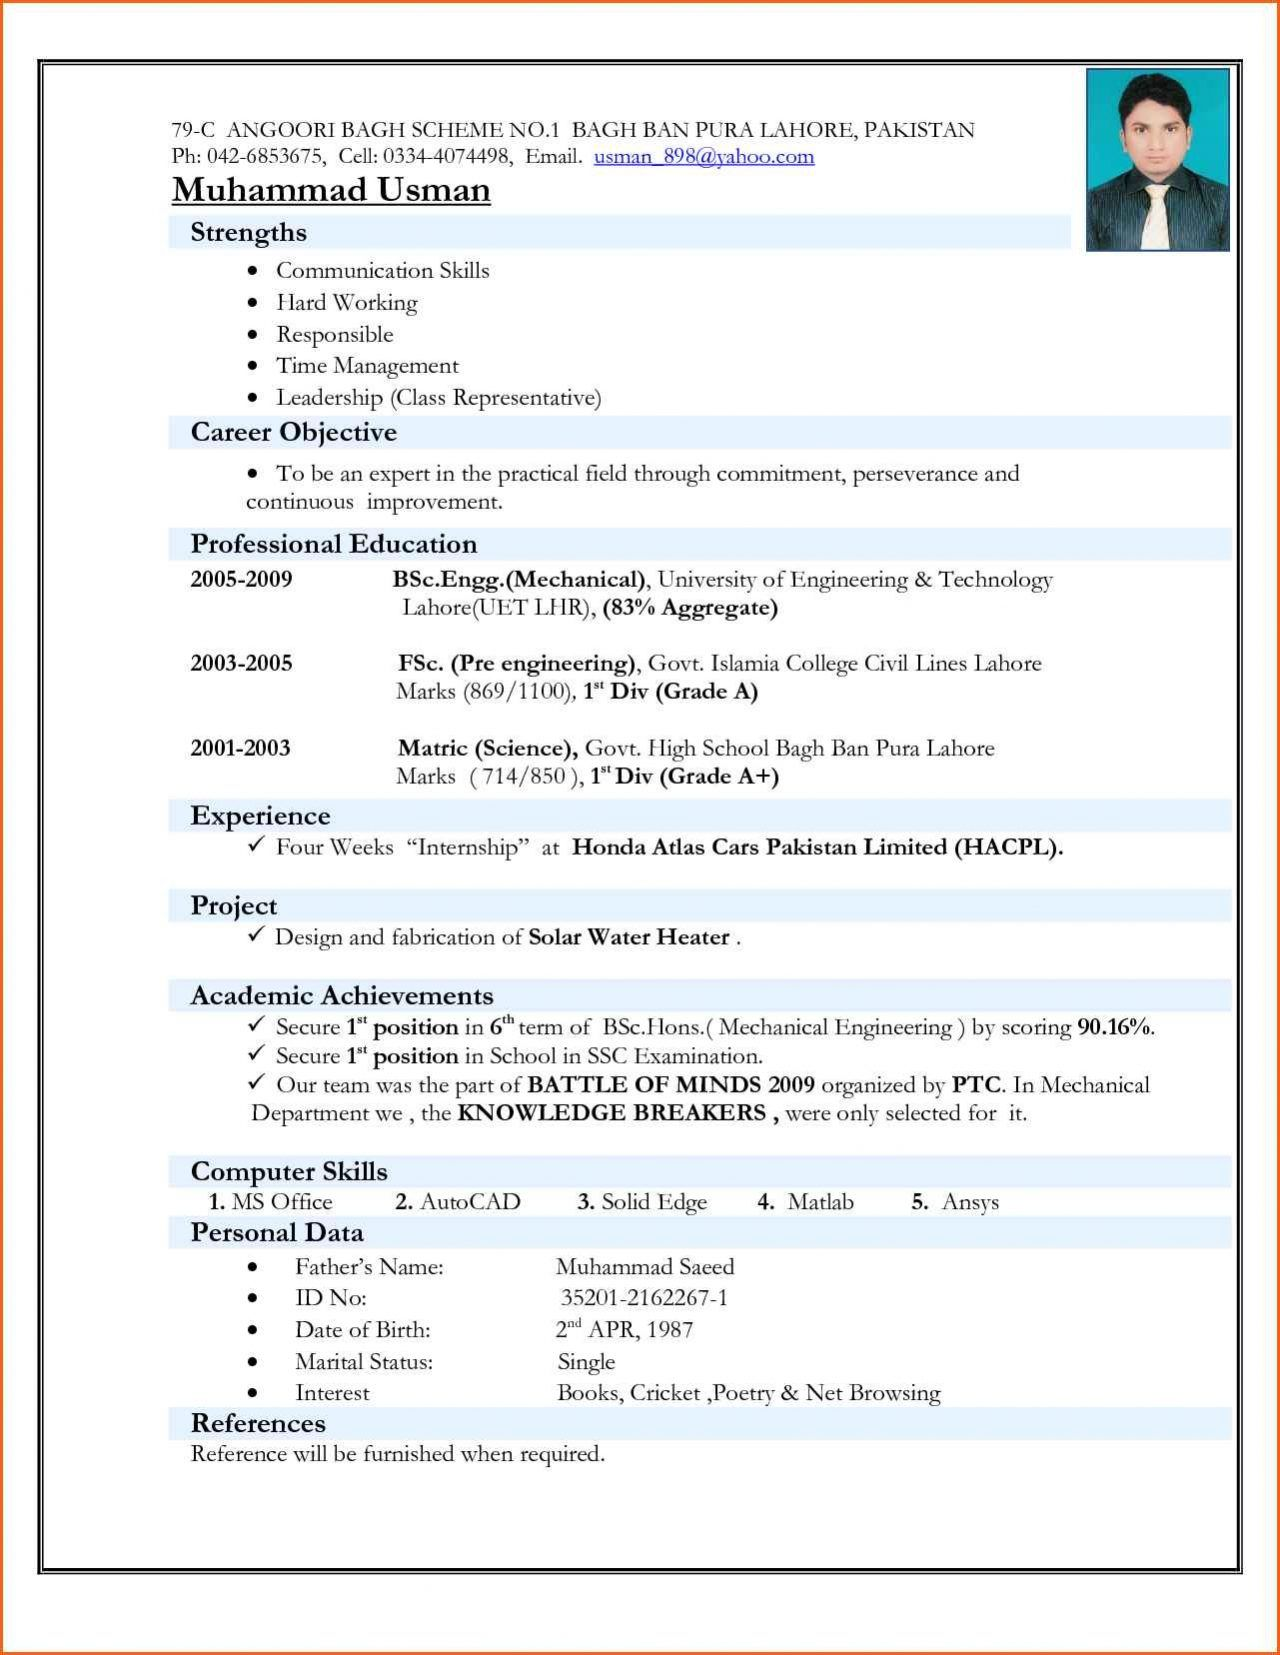 Latest Resume Format Templates For Freshers Free Download Teachers Resume Format Fantastic L Resume Format For Freshers Latest Resume Format Best Resume Format